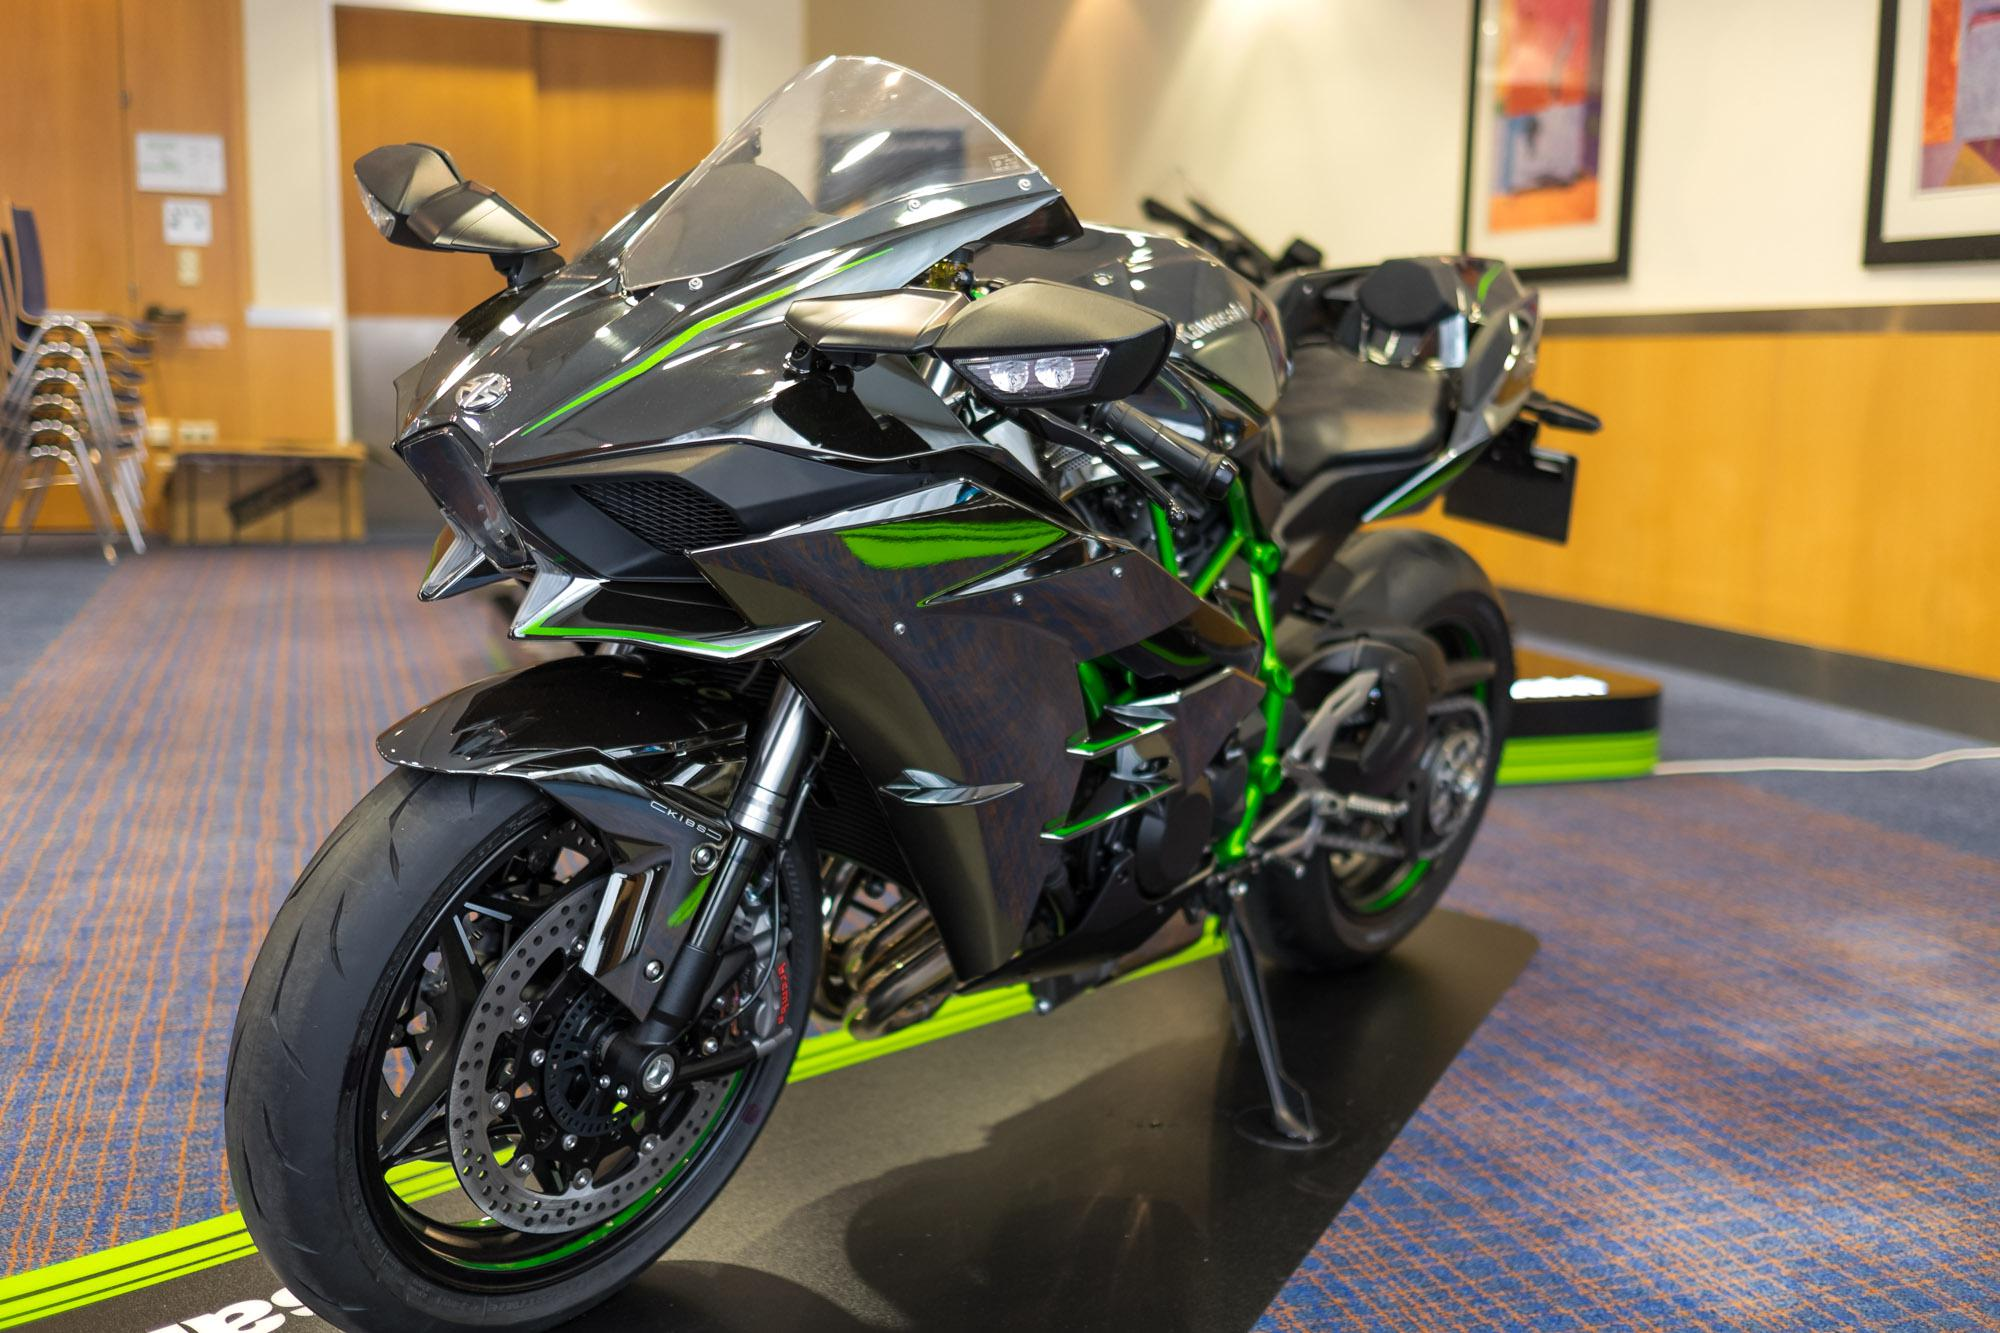 kawasaki ninja h2 und h2r premiere wien motorrad fotos motorrad bilder. Black Bedroom Furniture Sets. Home Design Ideas